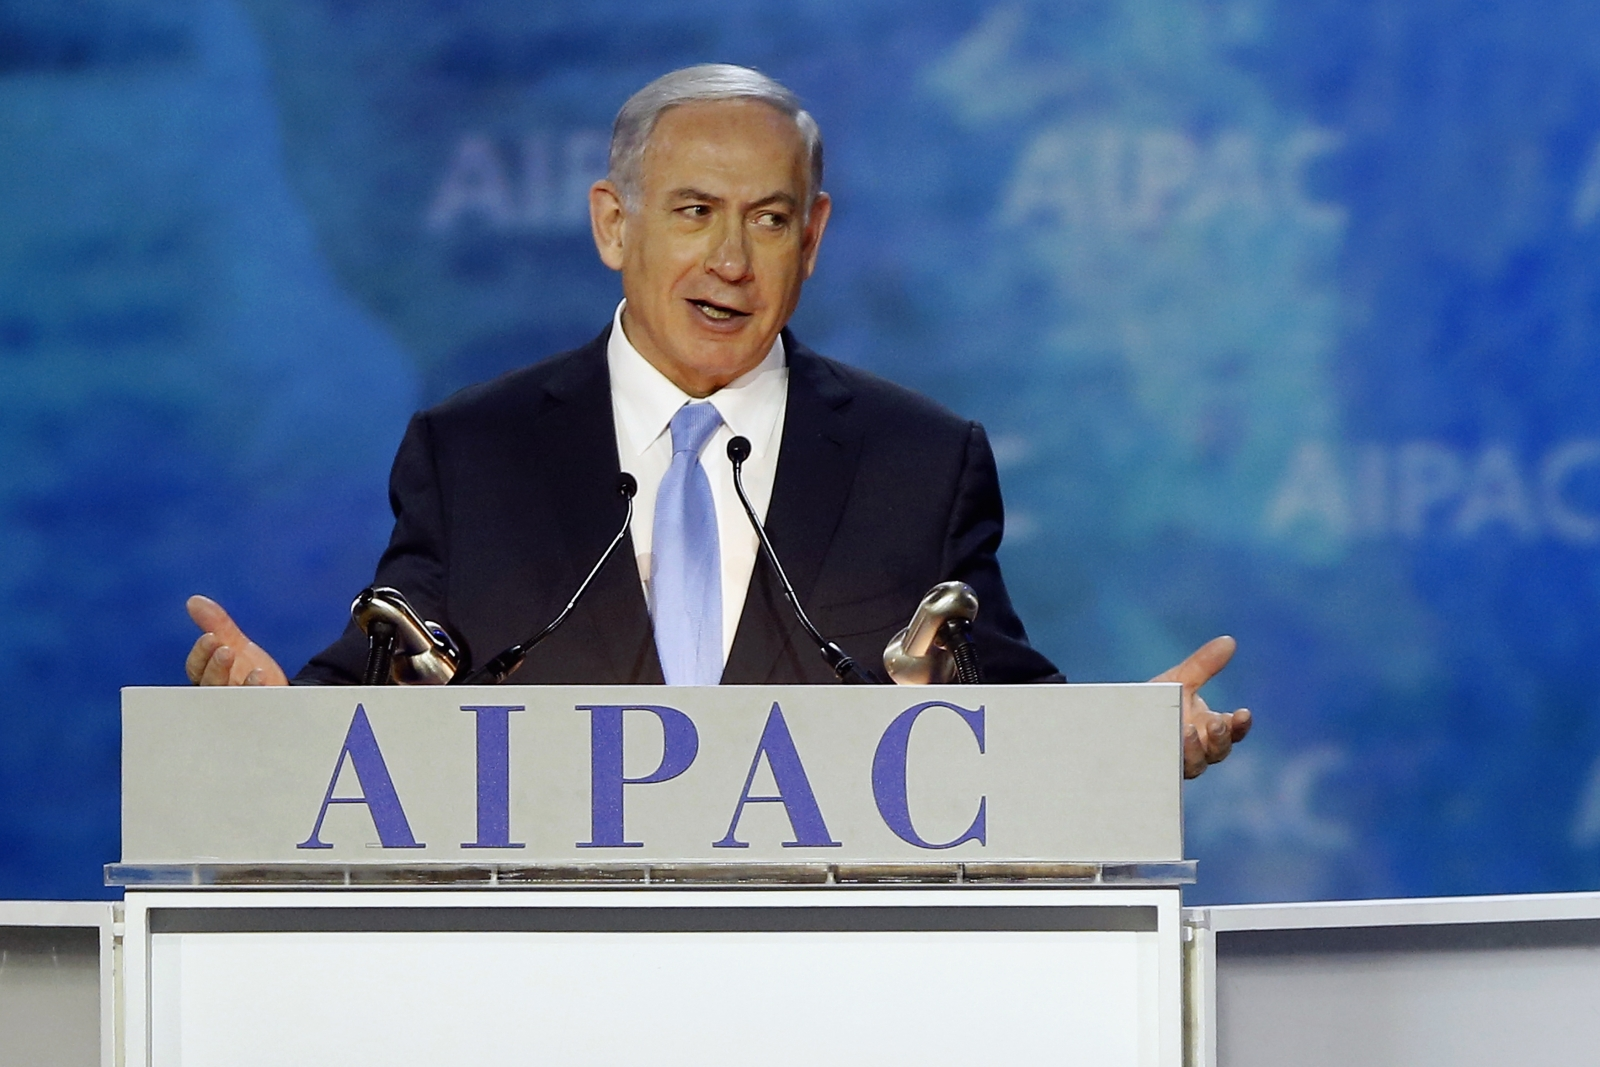 Netanyahu's US trip to address Congress